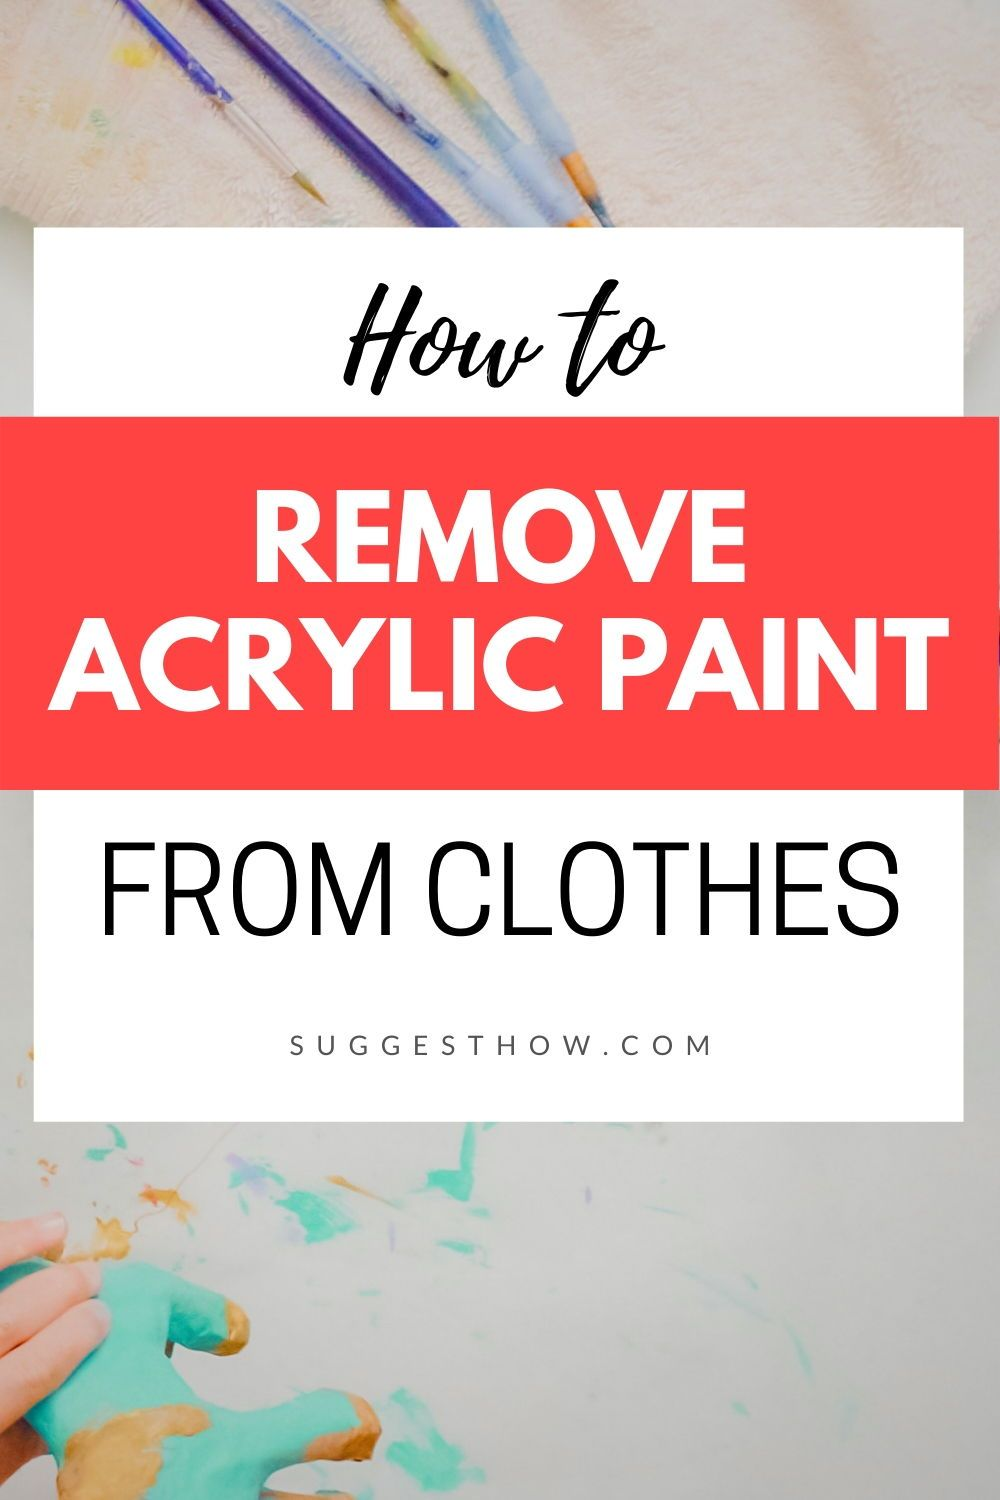 How To Remove Acrylic Paint From Clothes In 2020 Remove Acrylic Paint How To Remove Acrylic Painting